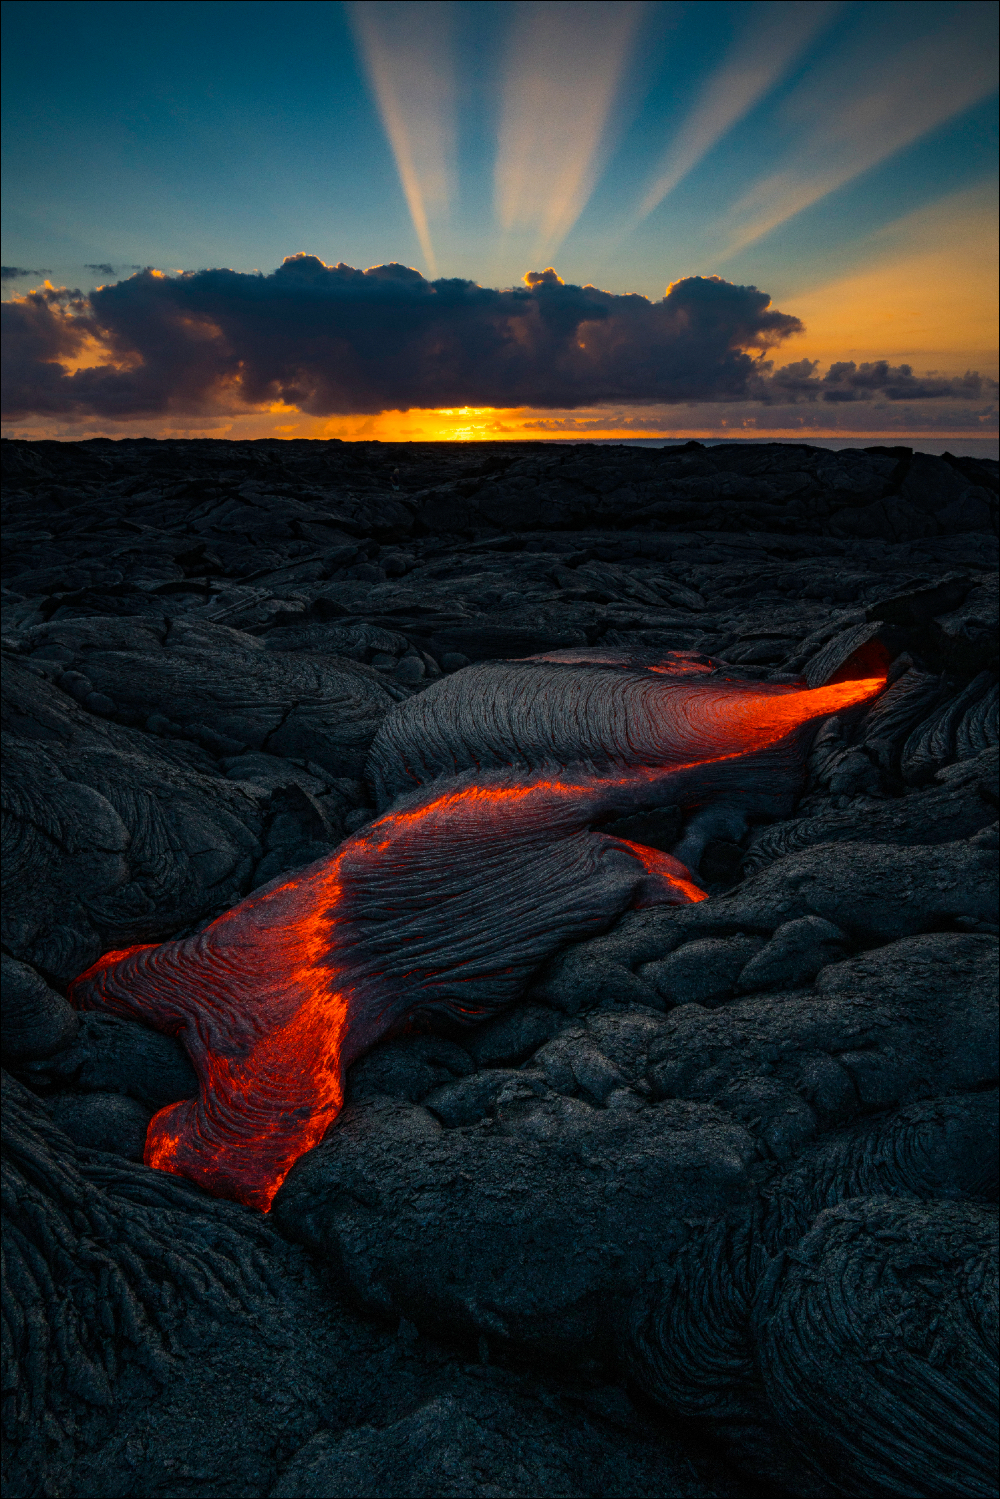 Sunrise on the lava field